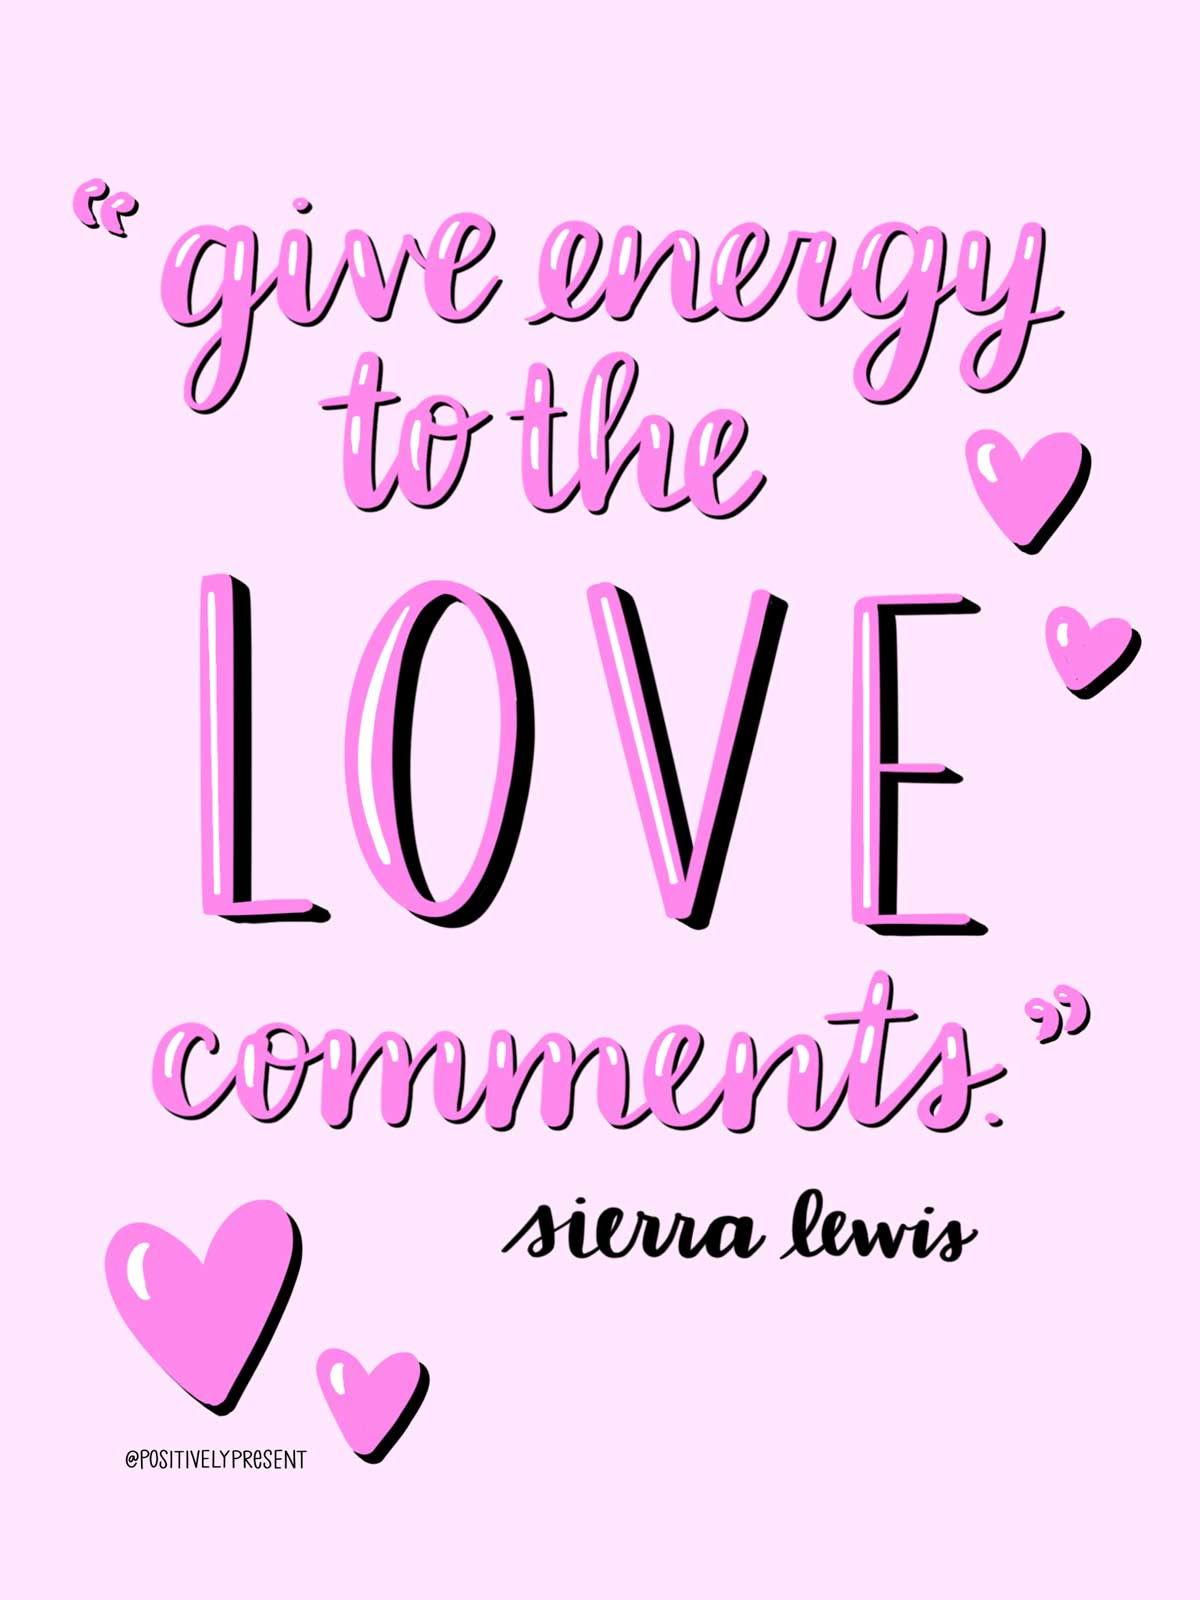 give energy to the love comments quote on pink background with hearts.